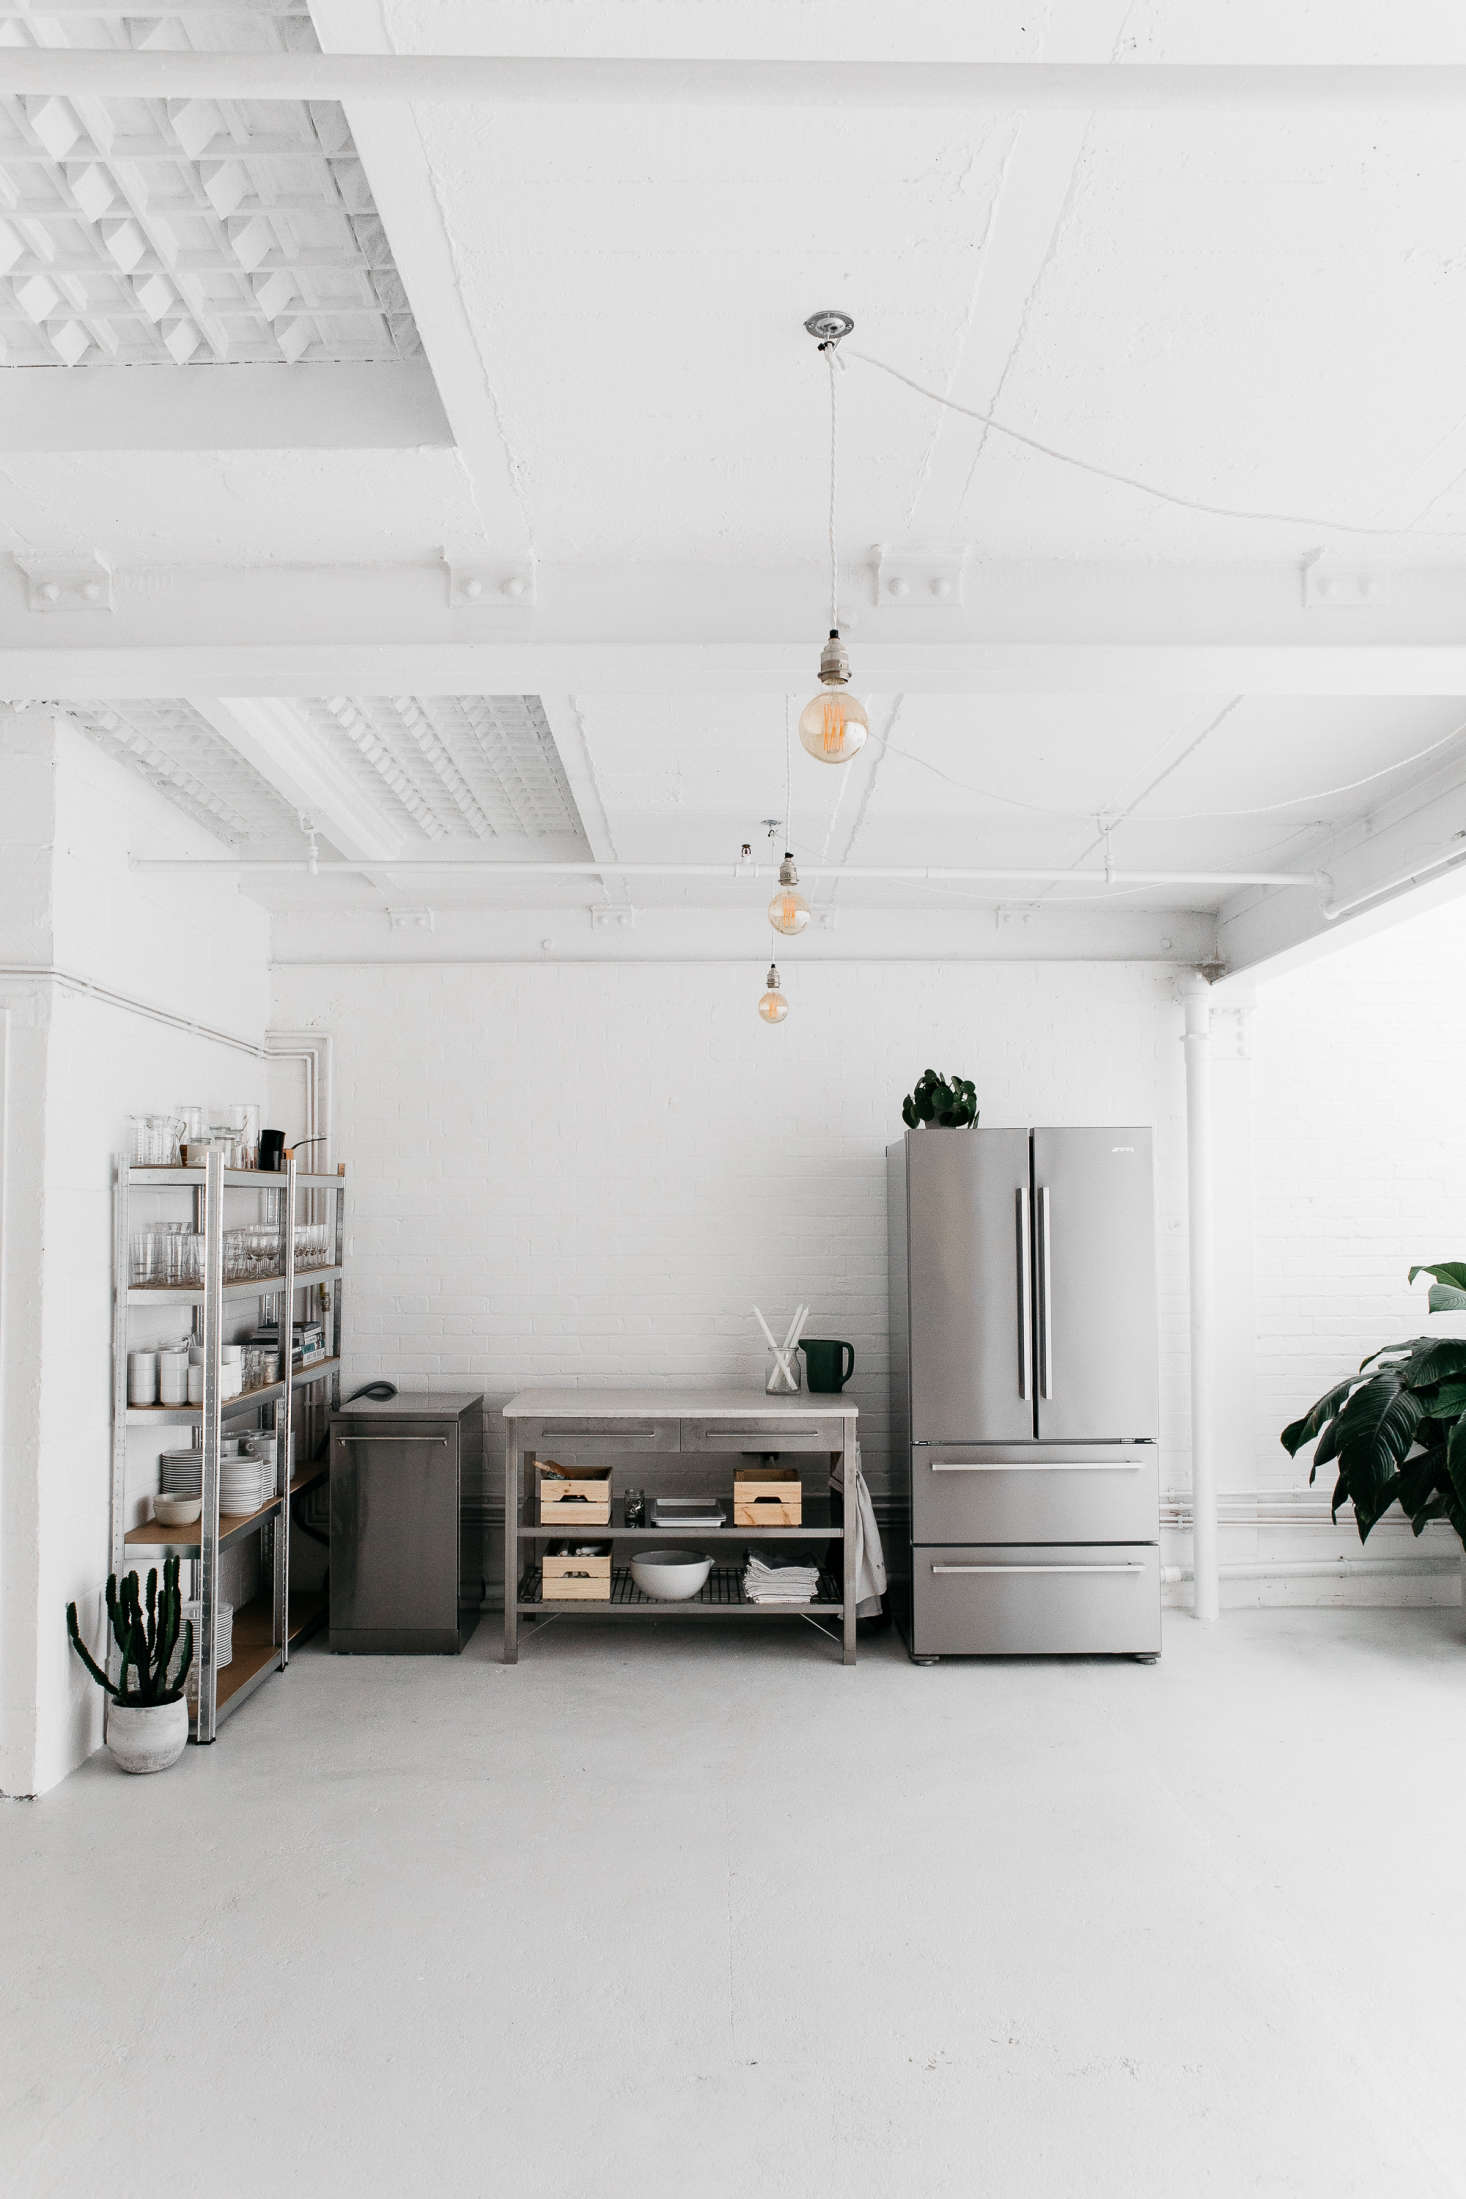 Half of the Rye kitchen in London is comprised of stainless steel workbenches and appliances. For more see Kitchen of the Week:An Artful Ikea Hack Kitchen by Two London Foodies.